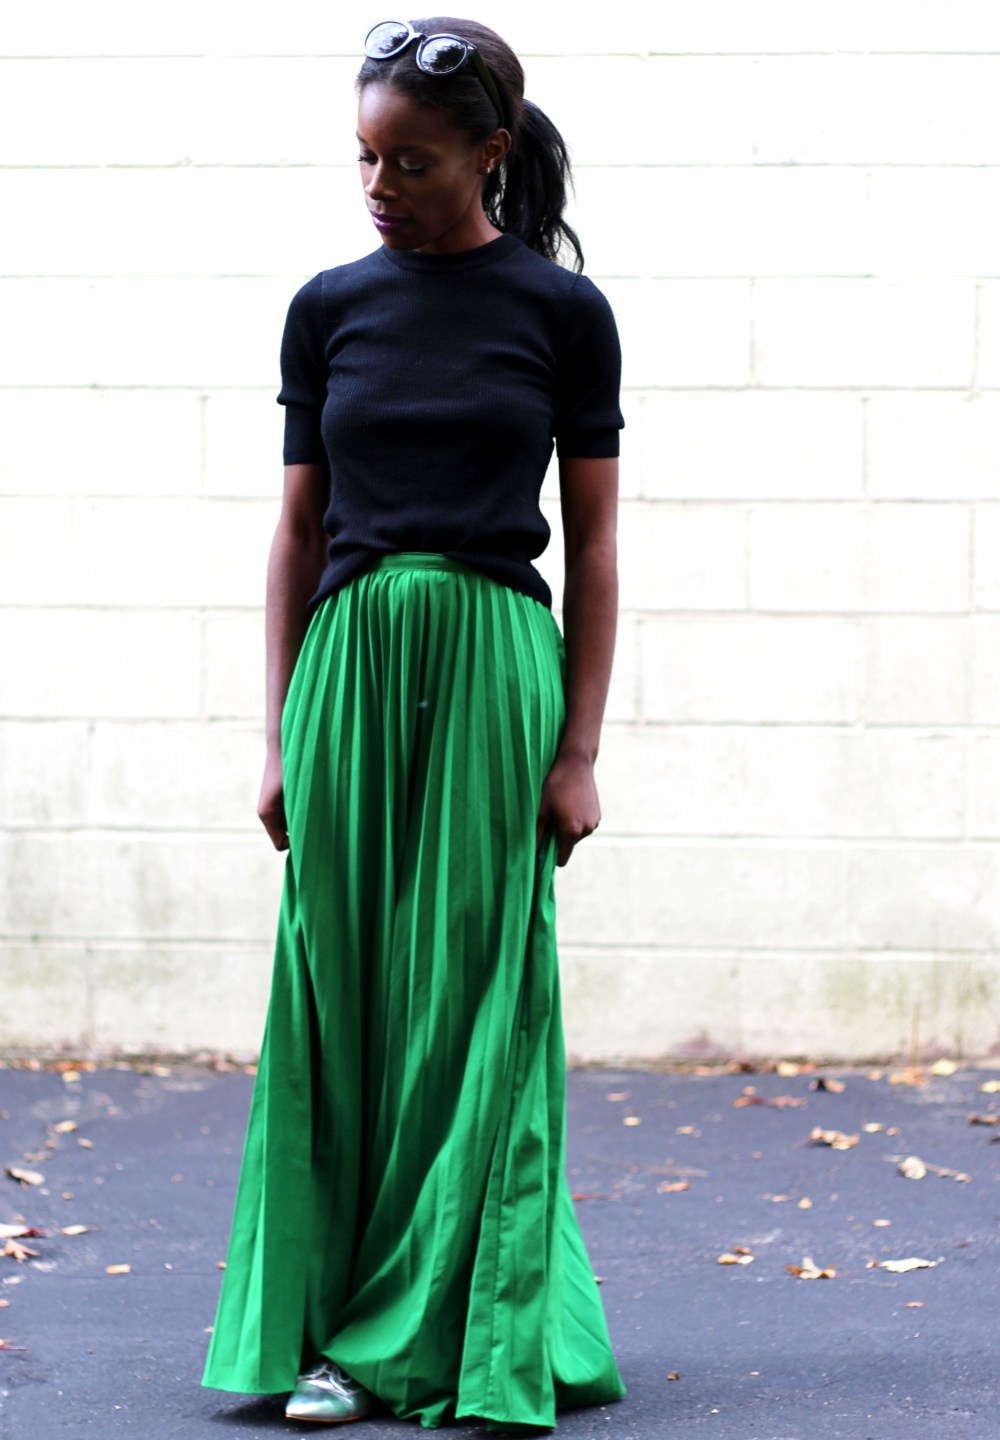 Black Sweater and Skirt